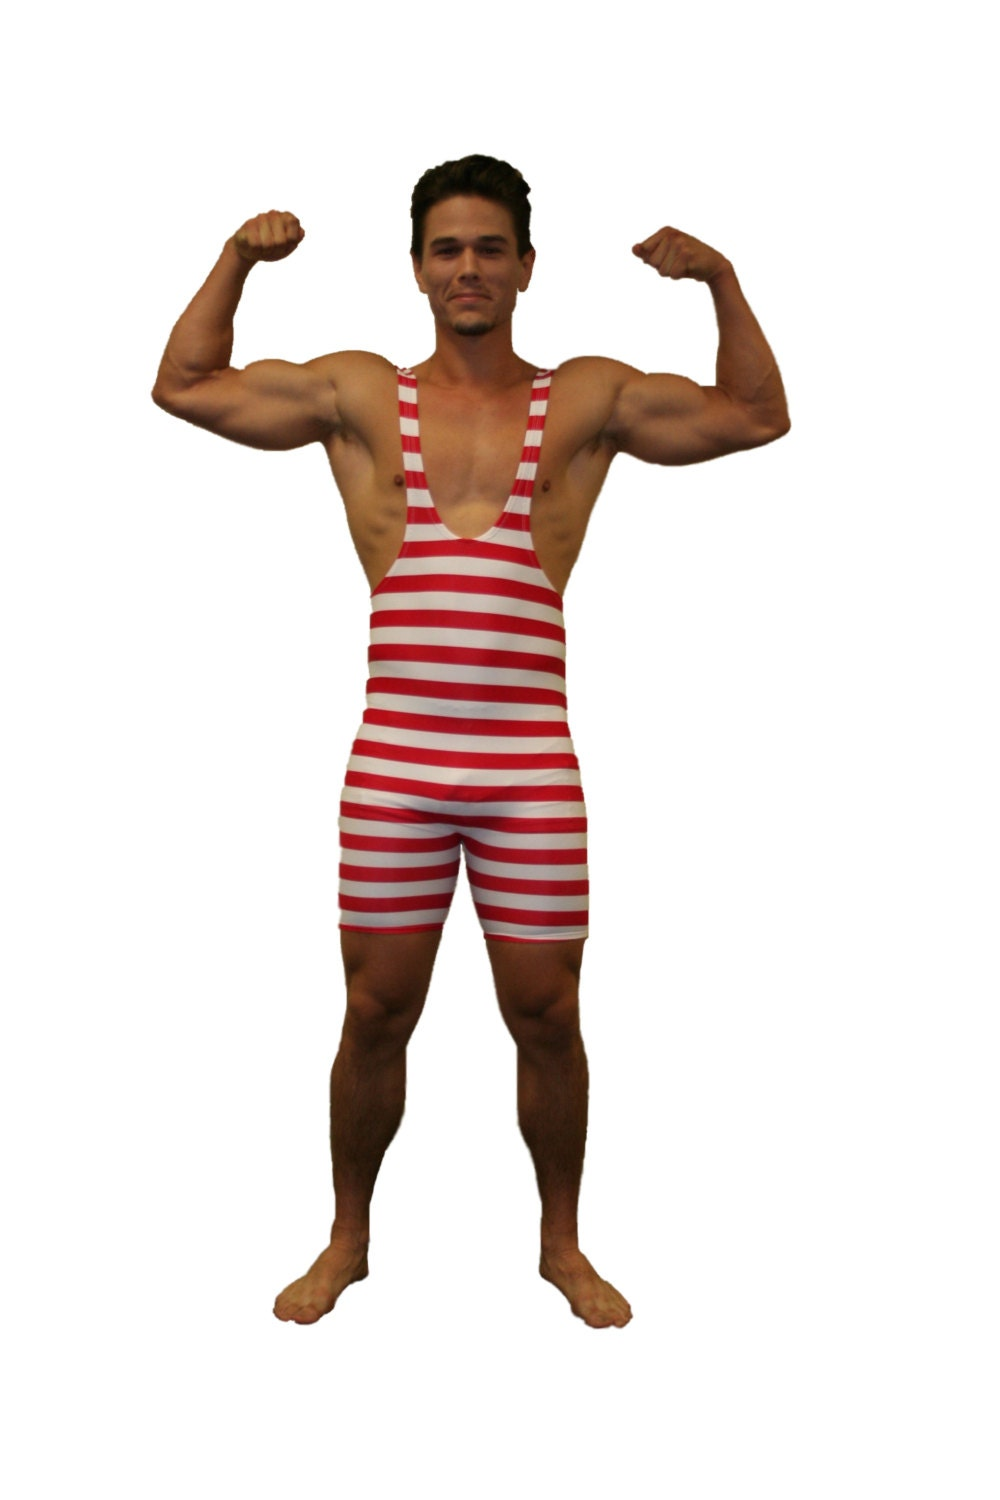 Made 4 U Stars and Stripes Red Wrestling Singlet; 1 Review(s) Made 4 U Stars and Stripes Red Wrestling Singlet. More Views. Made 4 U Stars and Stripes Red Wrestling Singlet. $ The front has a red design with blue highlights and an American Flag emblem, and the back features a field of red and white stripes.